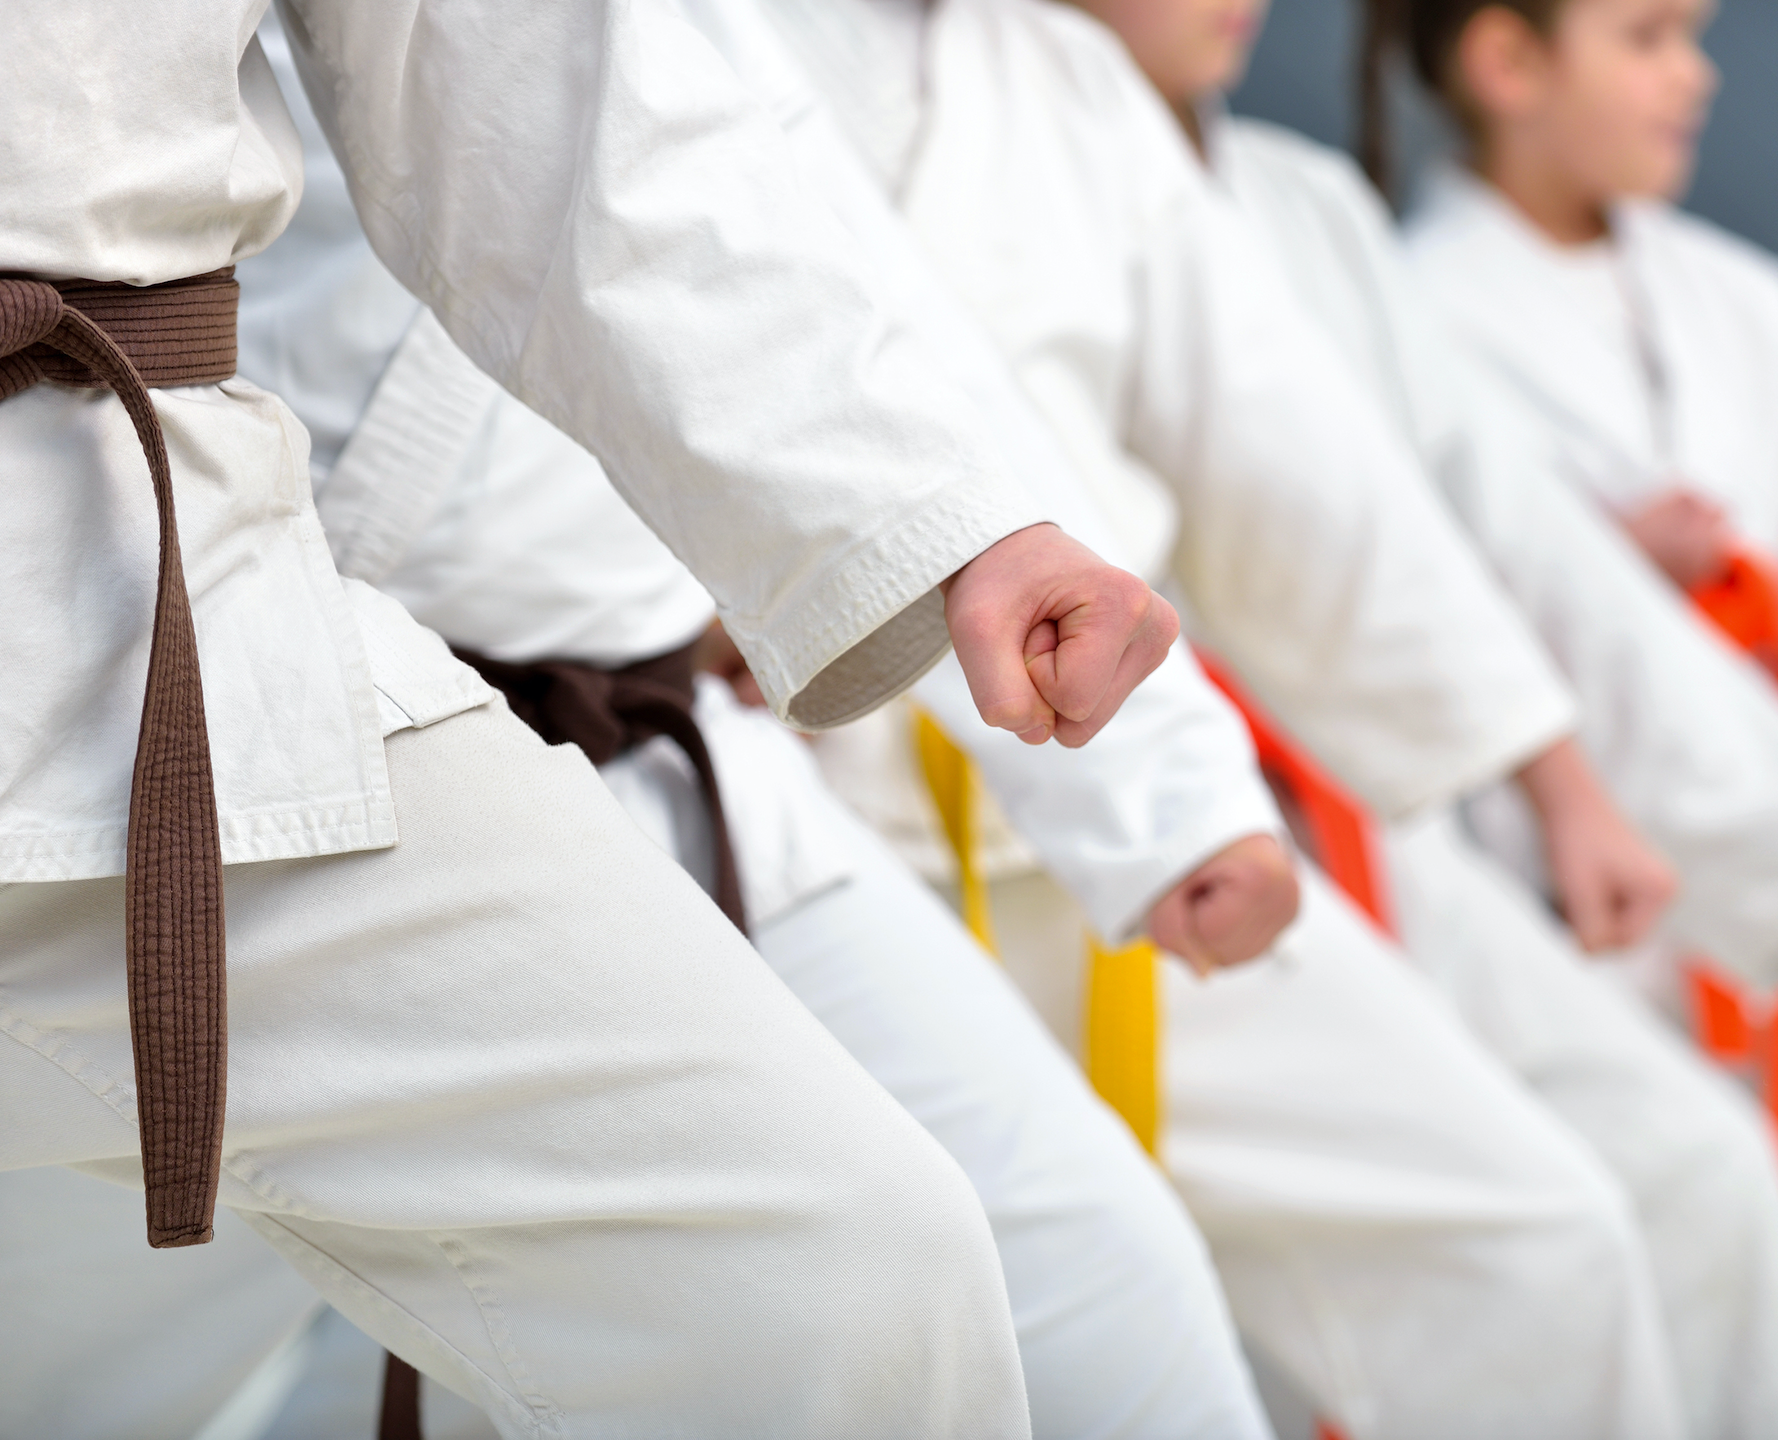 FREE Trial KARATE Class + Q&A Ages 5-7